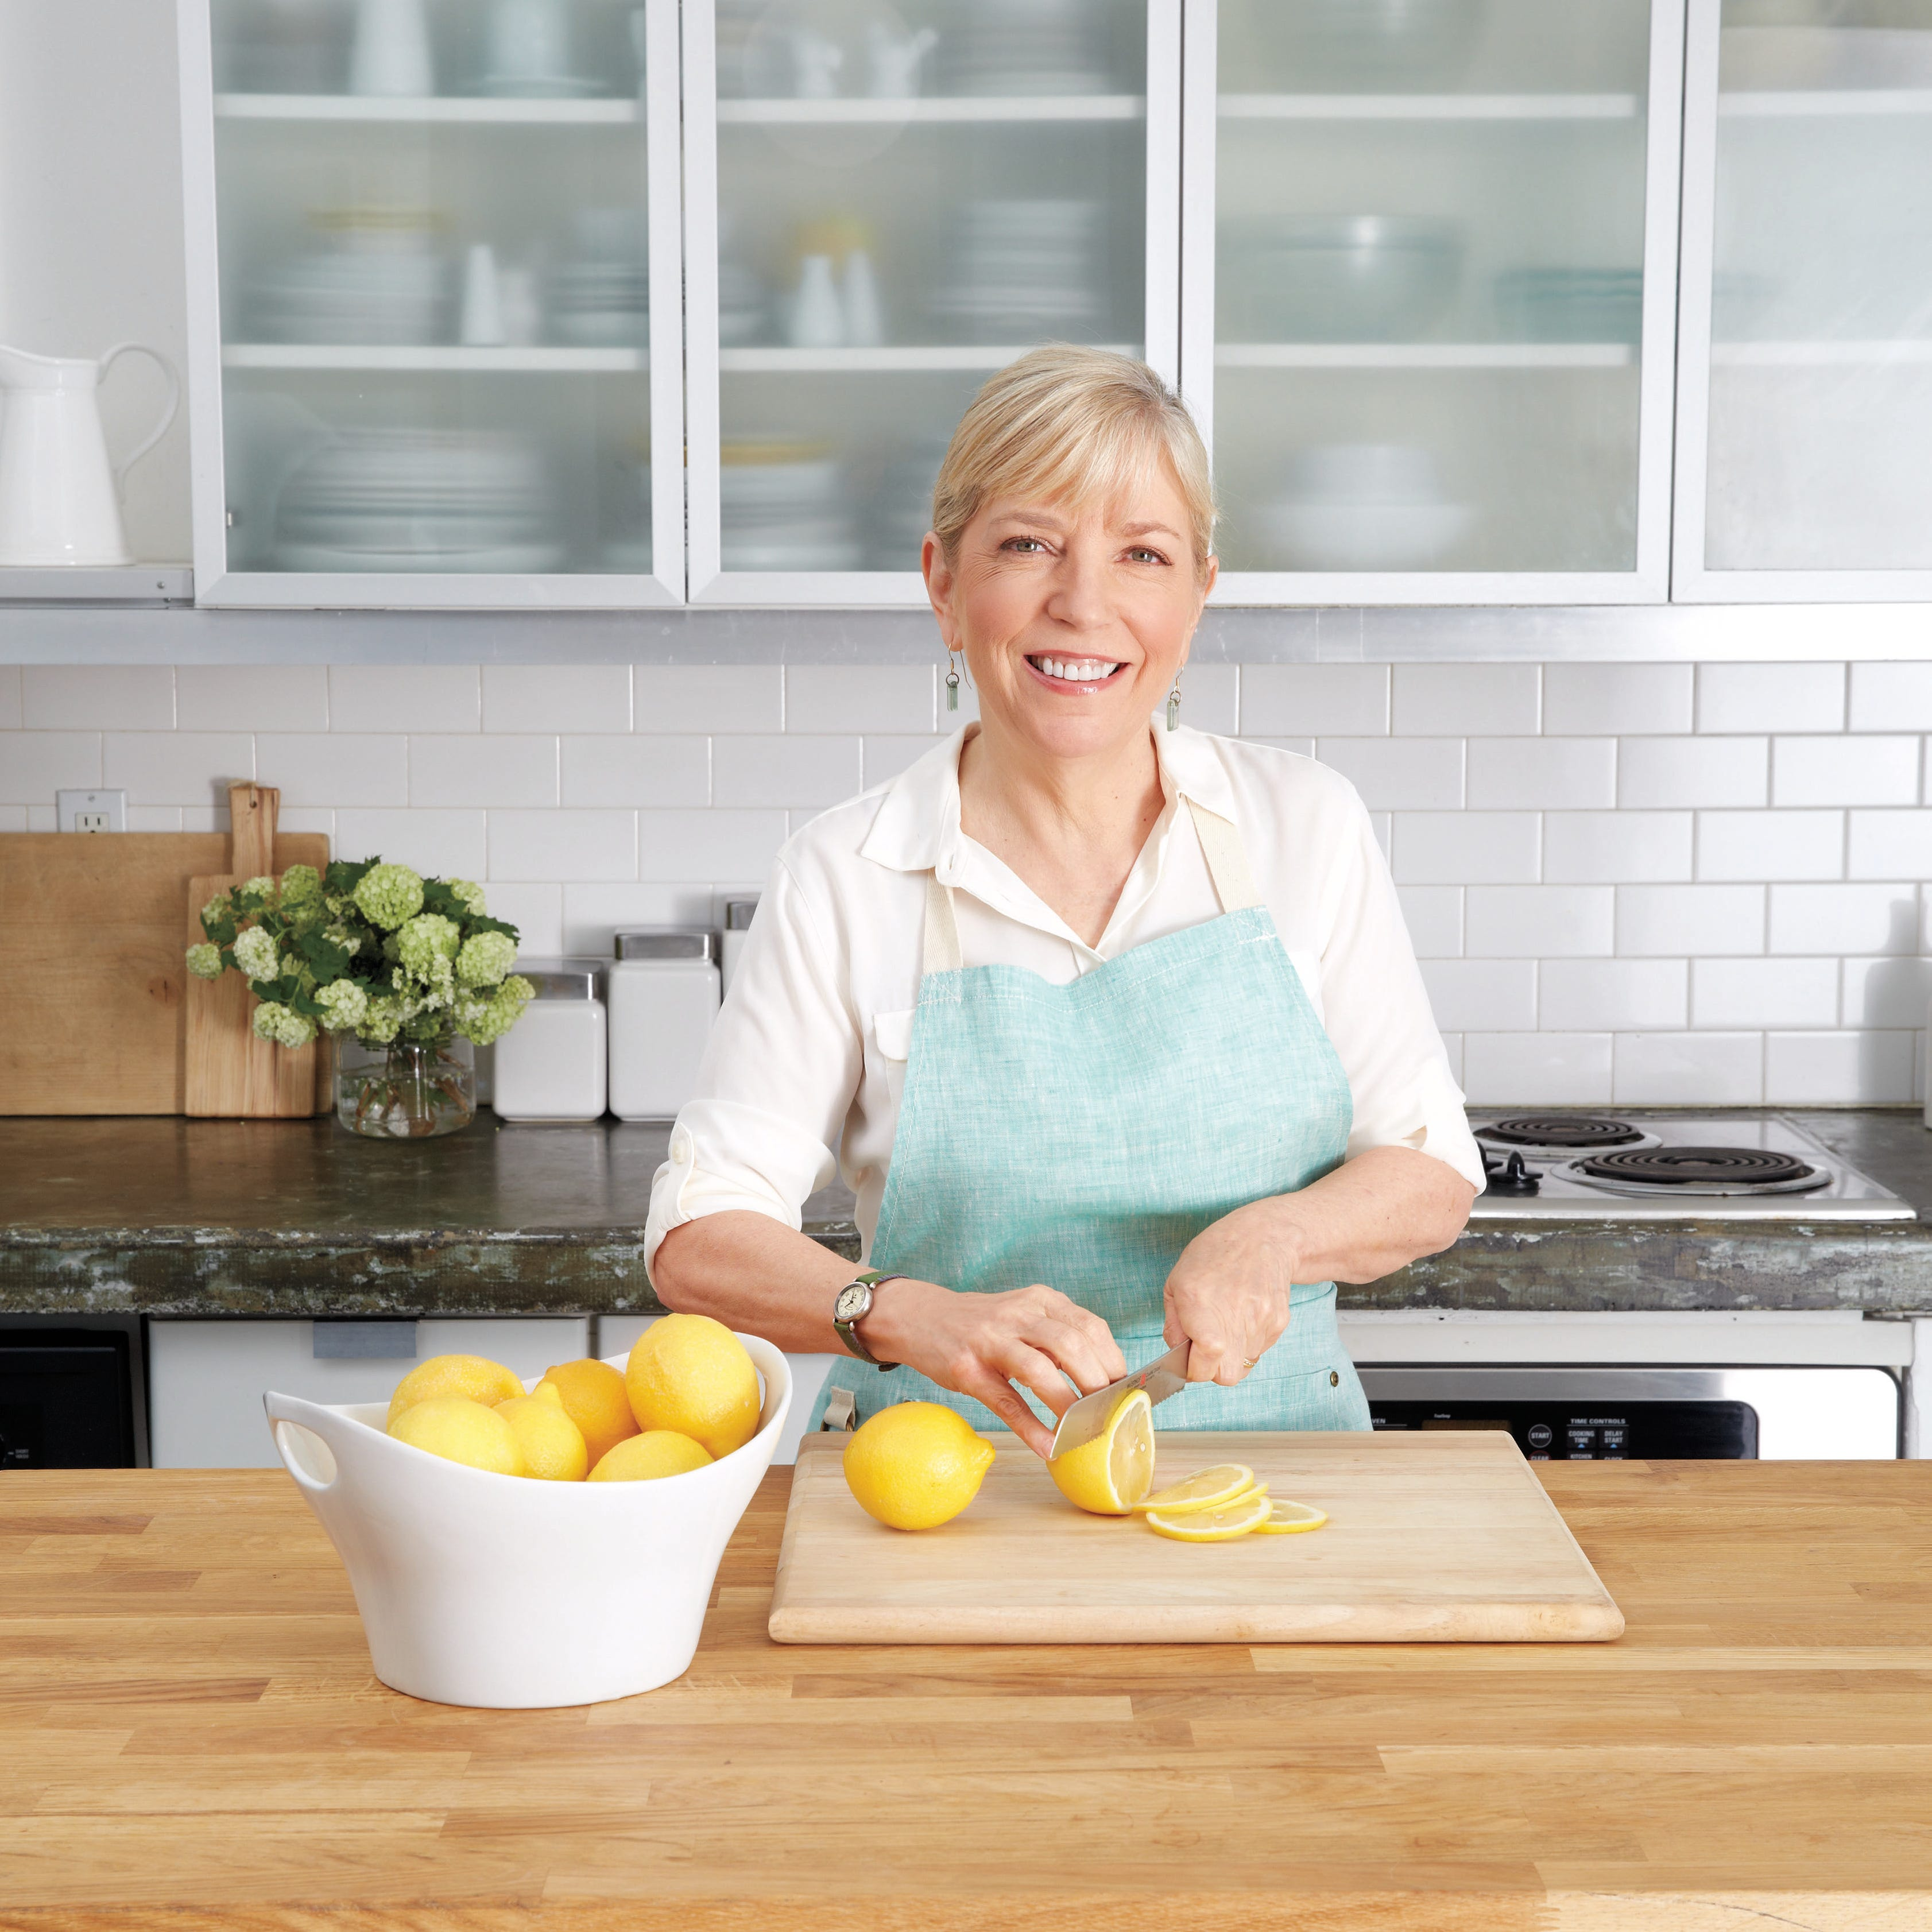 TV chef Sara Moulton to present meal, cooking demonstration at The Essex Resort and Spa